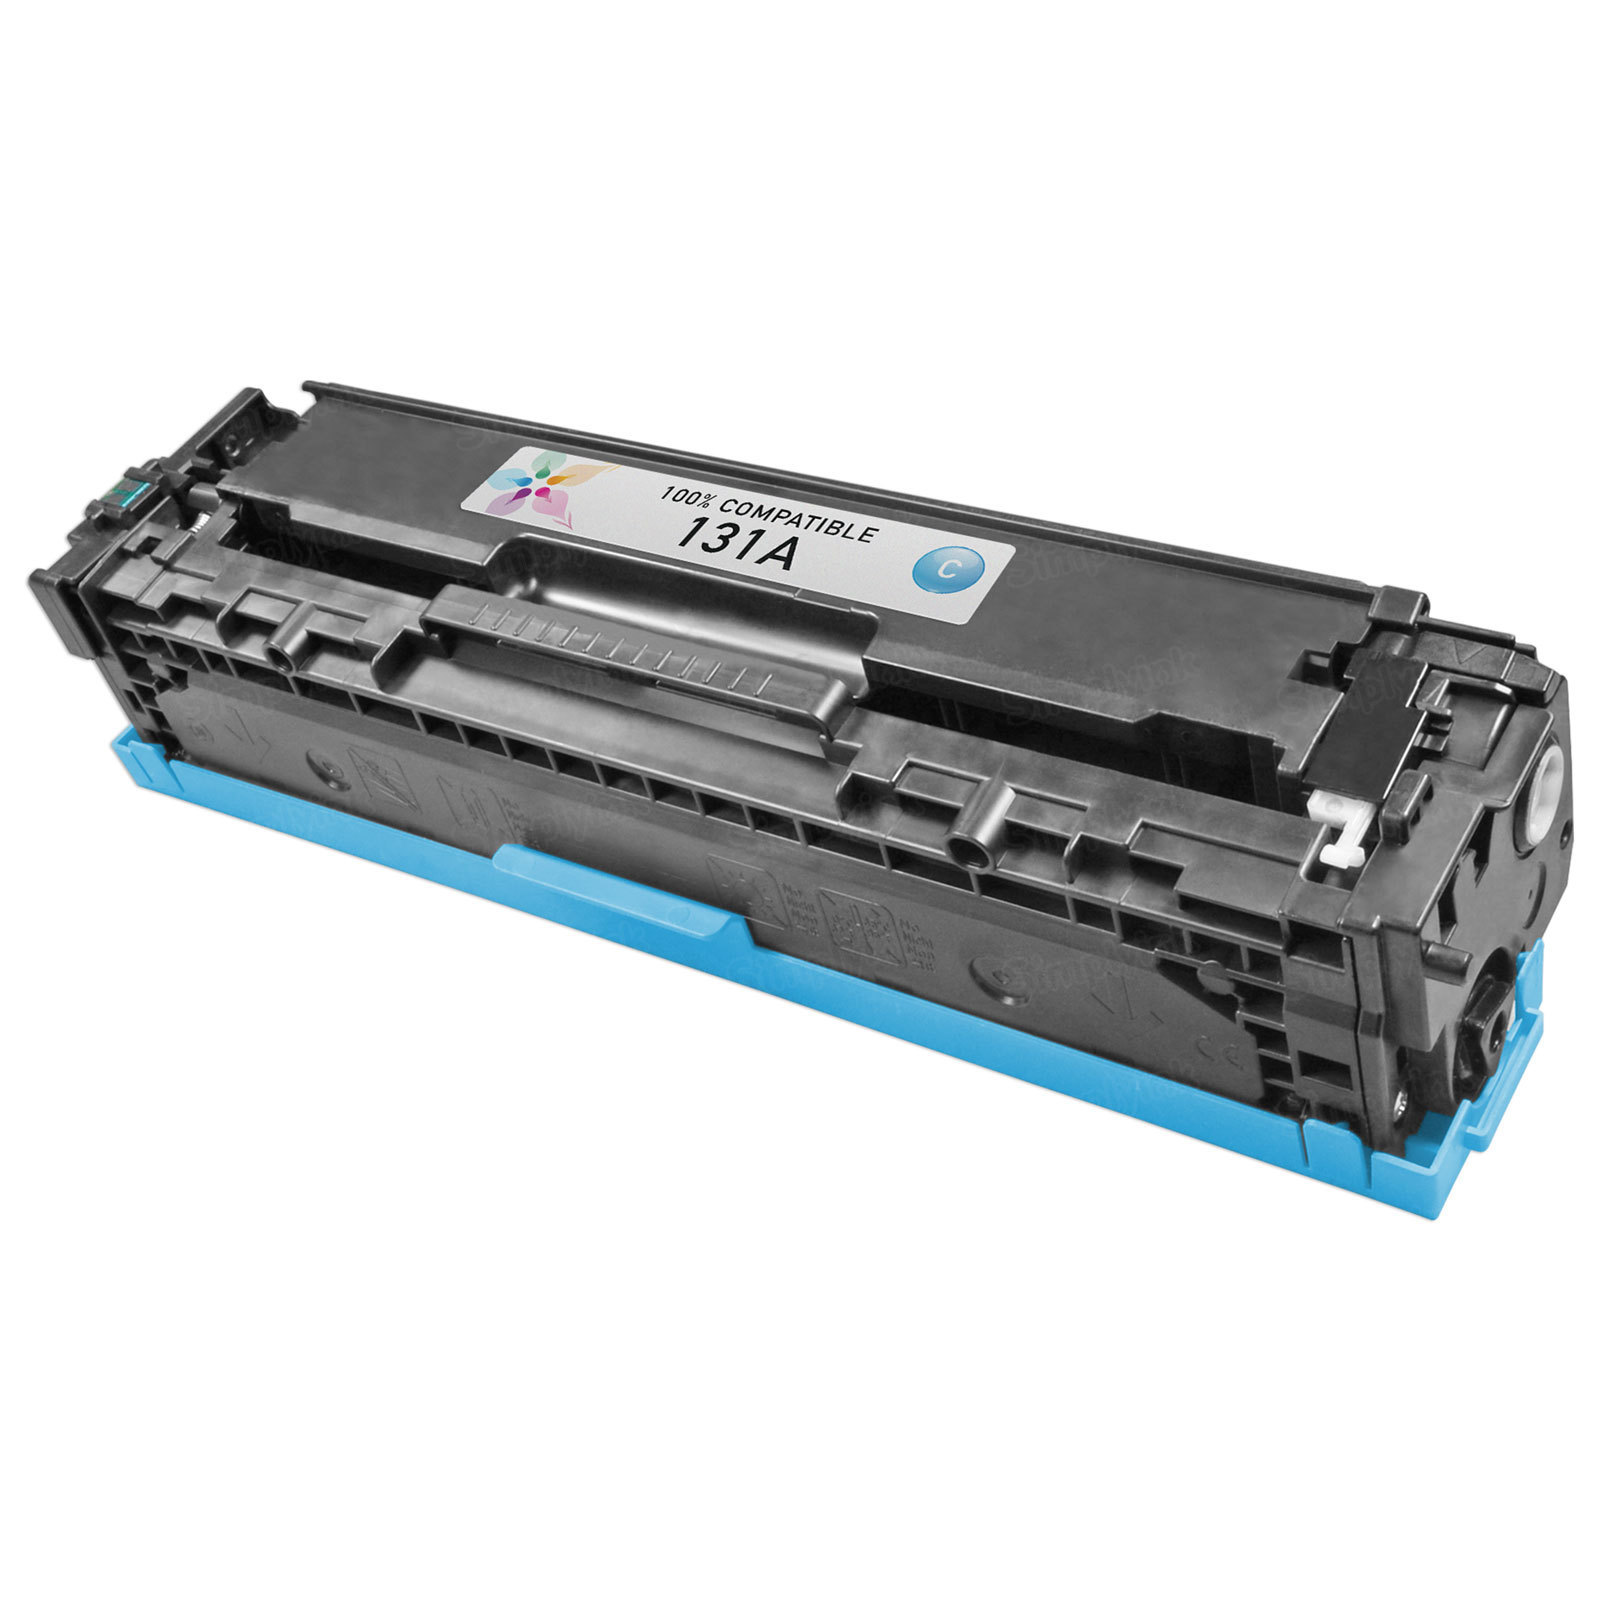 Remanufactured Replacement Cyan Laser Toner for HP 131A